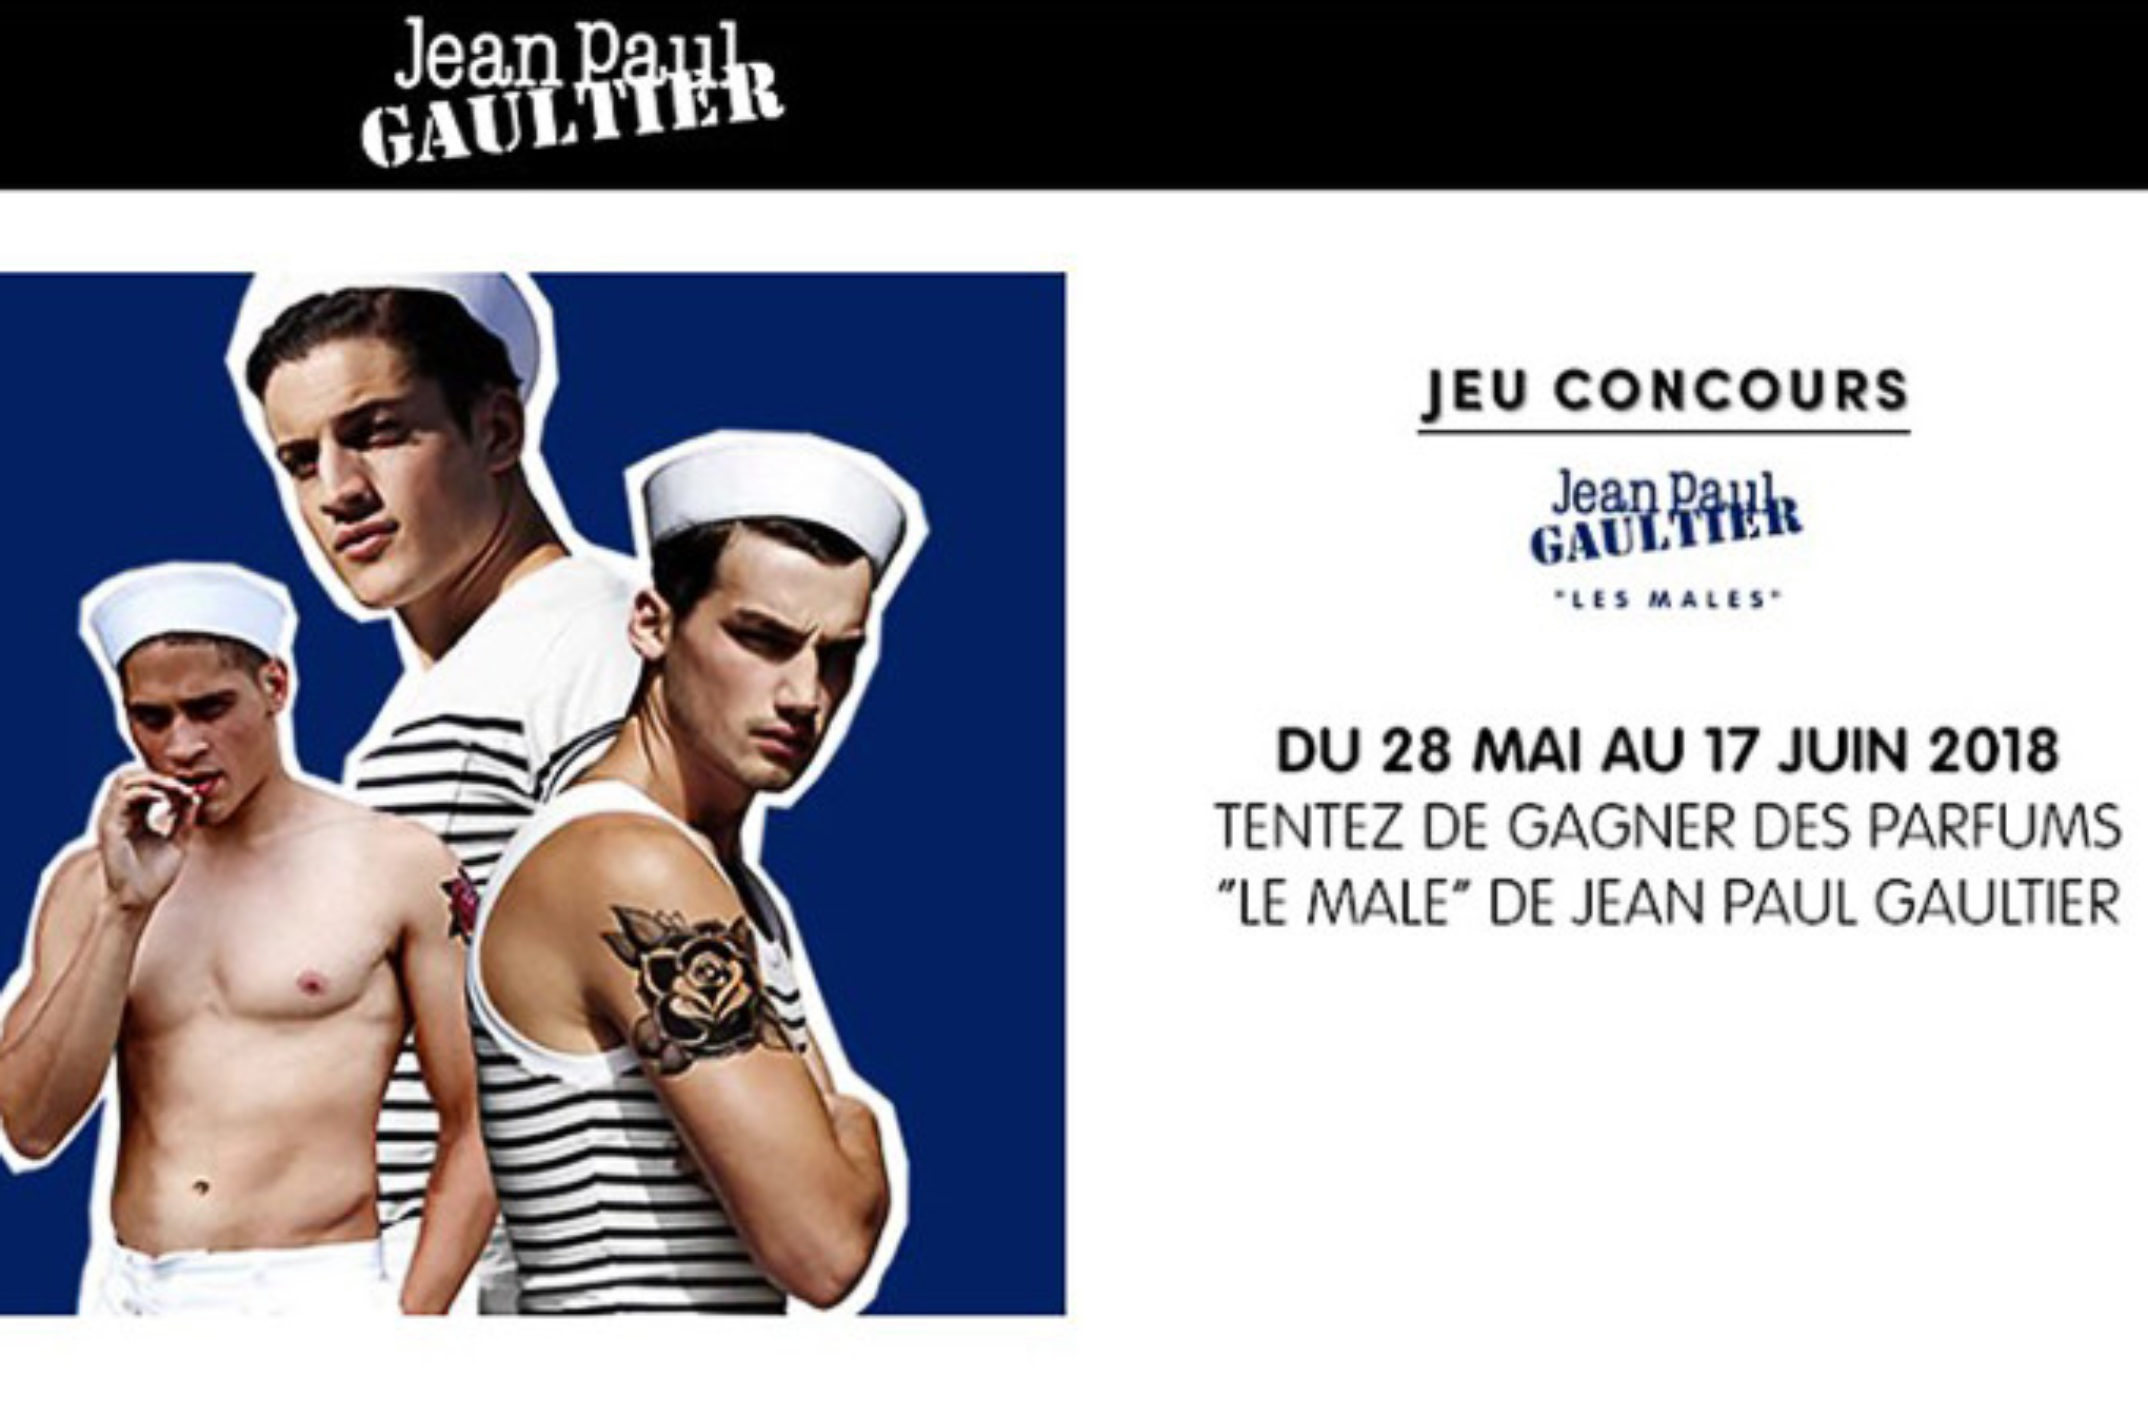 21 packs de parfums « Le Male » de Jean Paul Gaultier à gagner